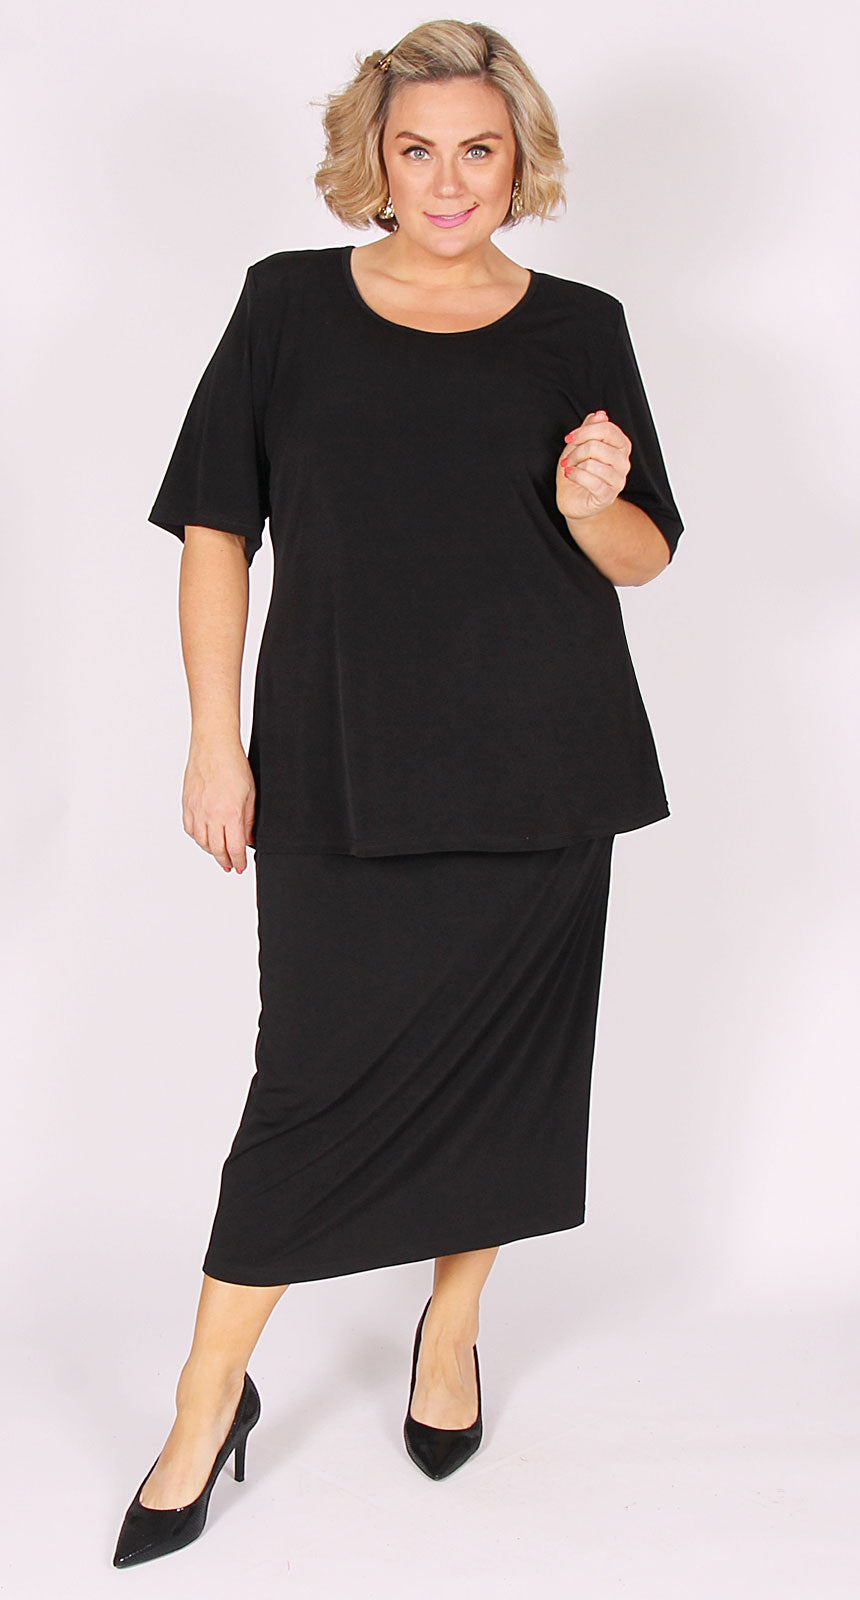 Lagos Long-Length Knit Straight Skirt Black